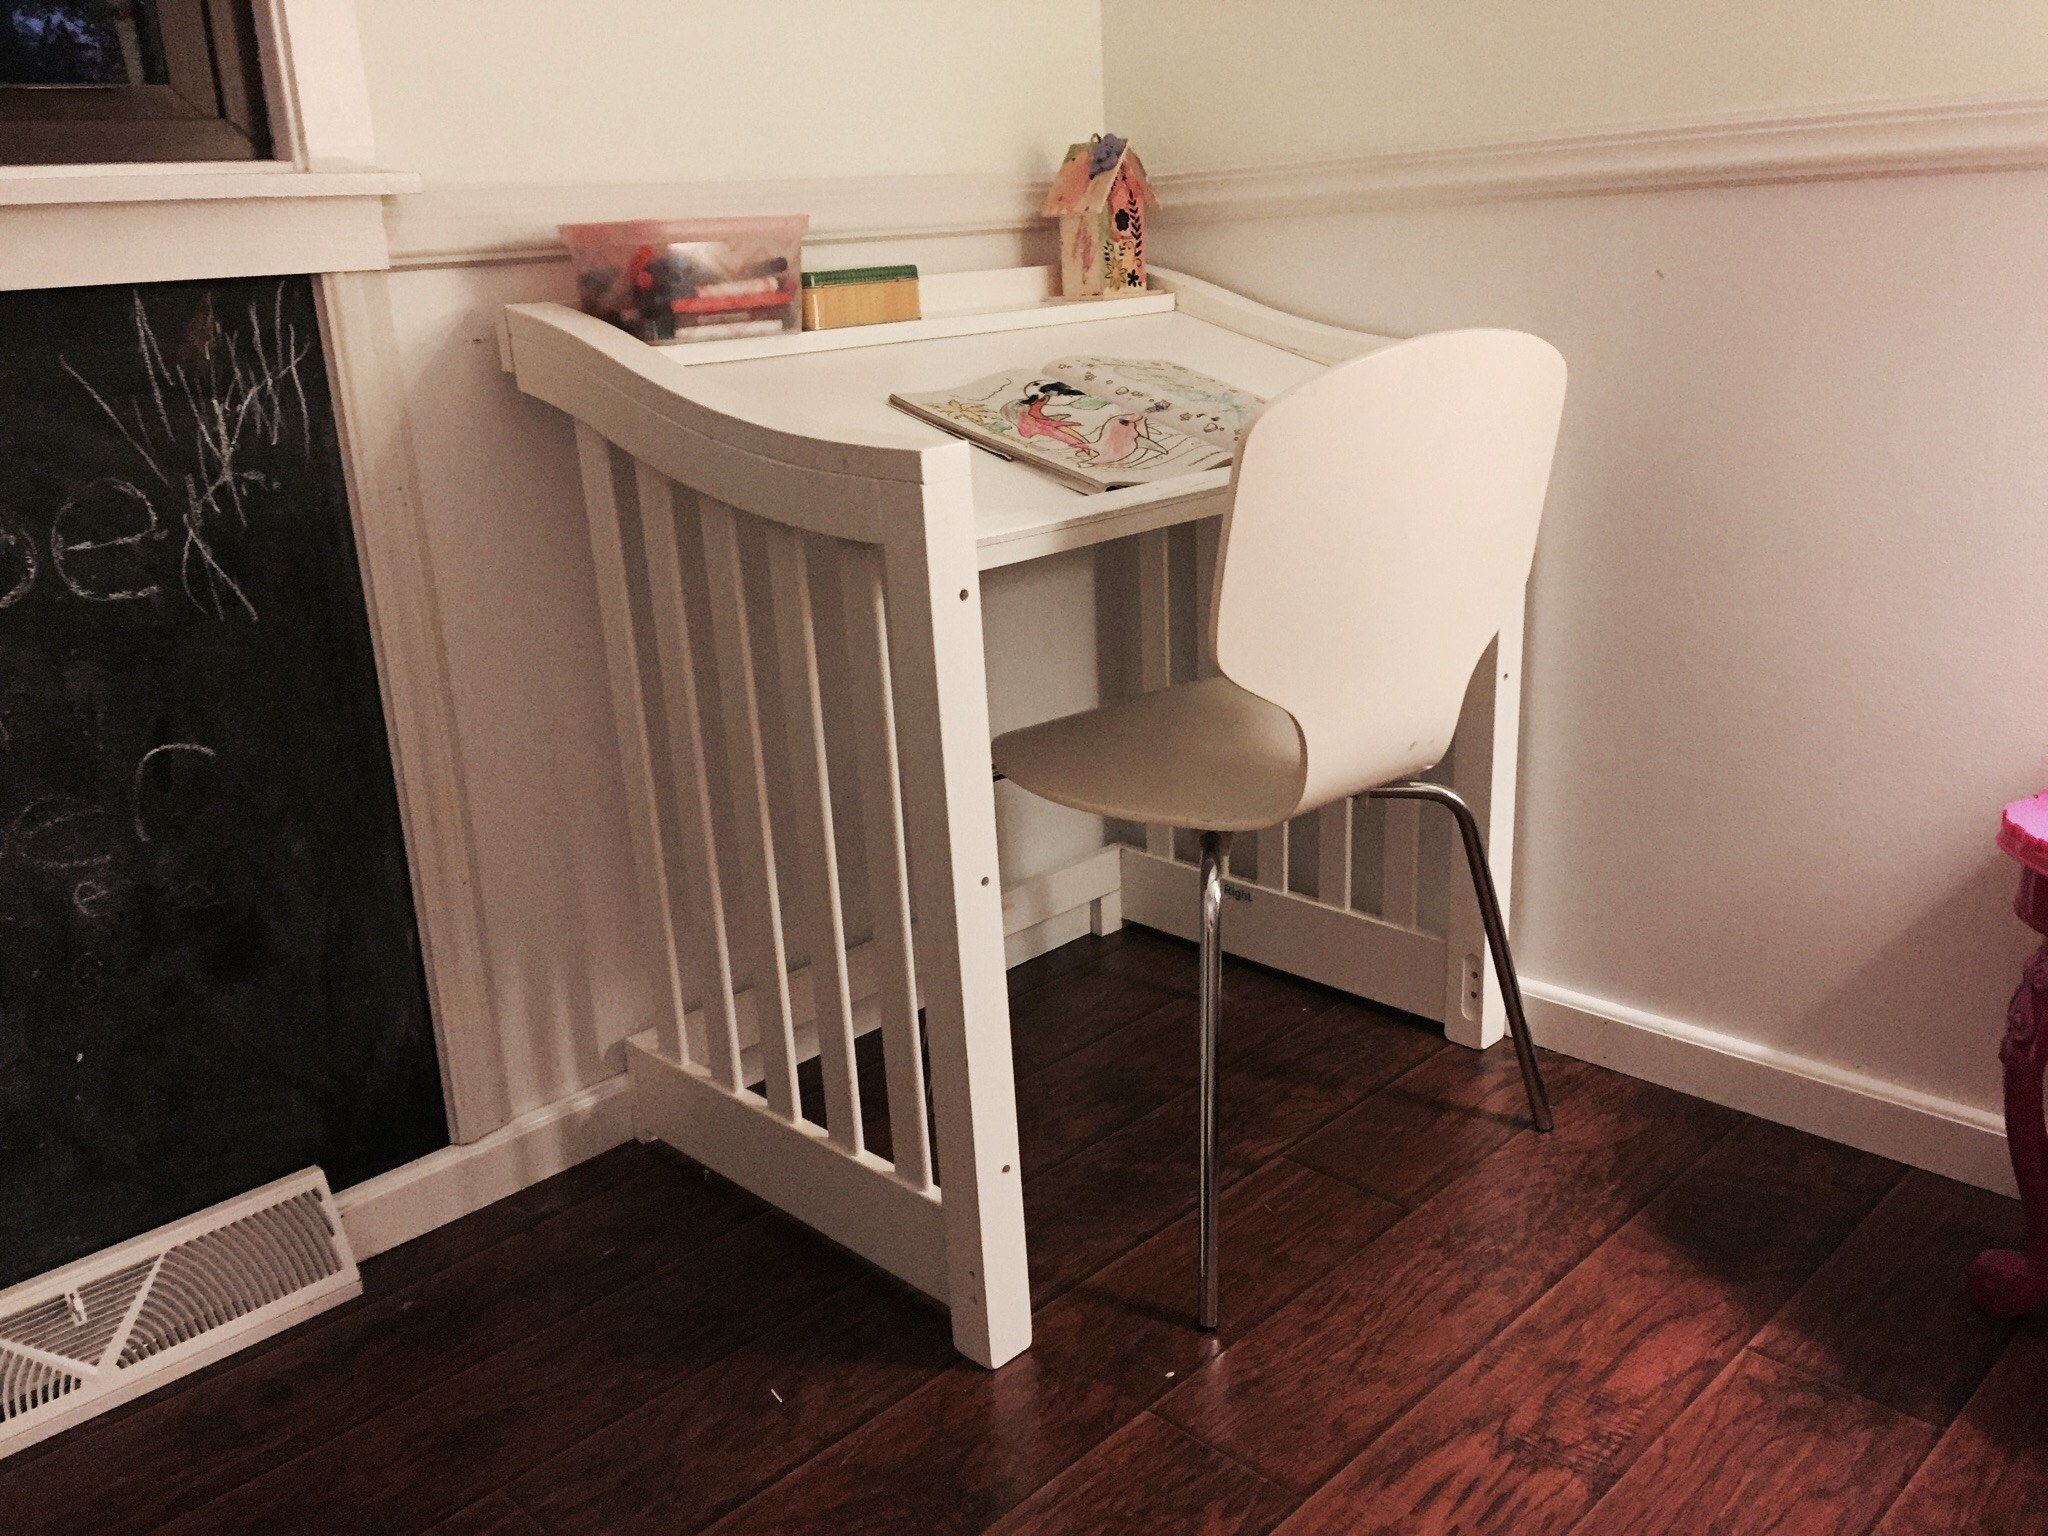 From Dave Roesch: For all the parents who don't know what to do with their lifetime crib rails - make a small art desk! My daughter loves it and it matches her room's furniture.